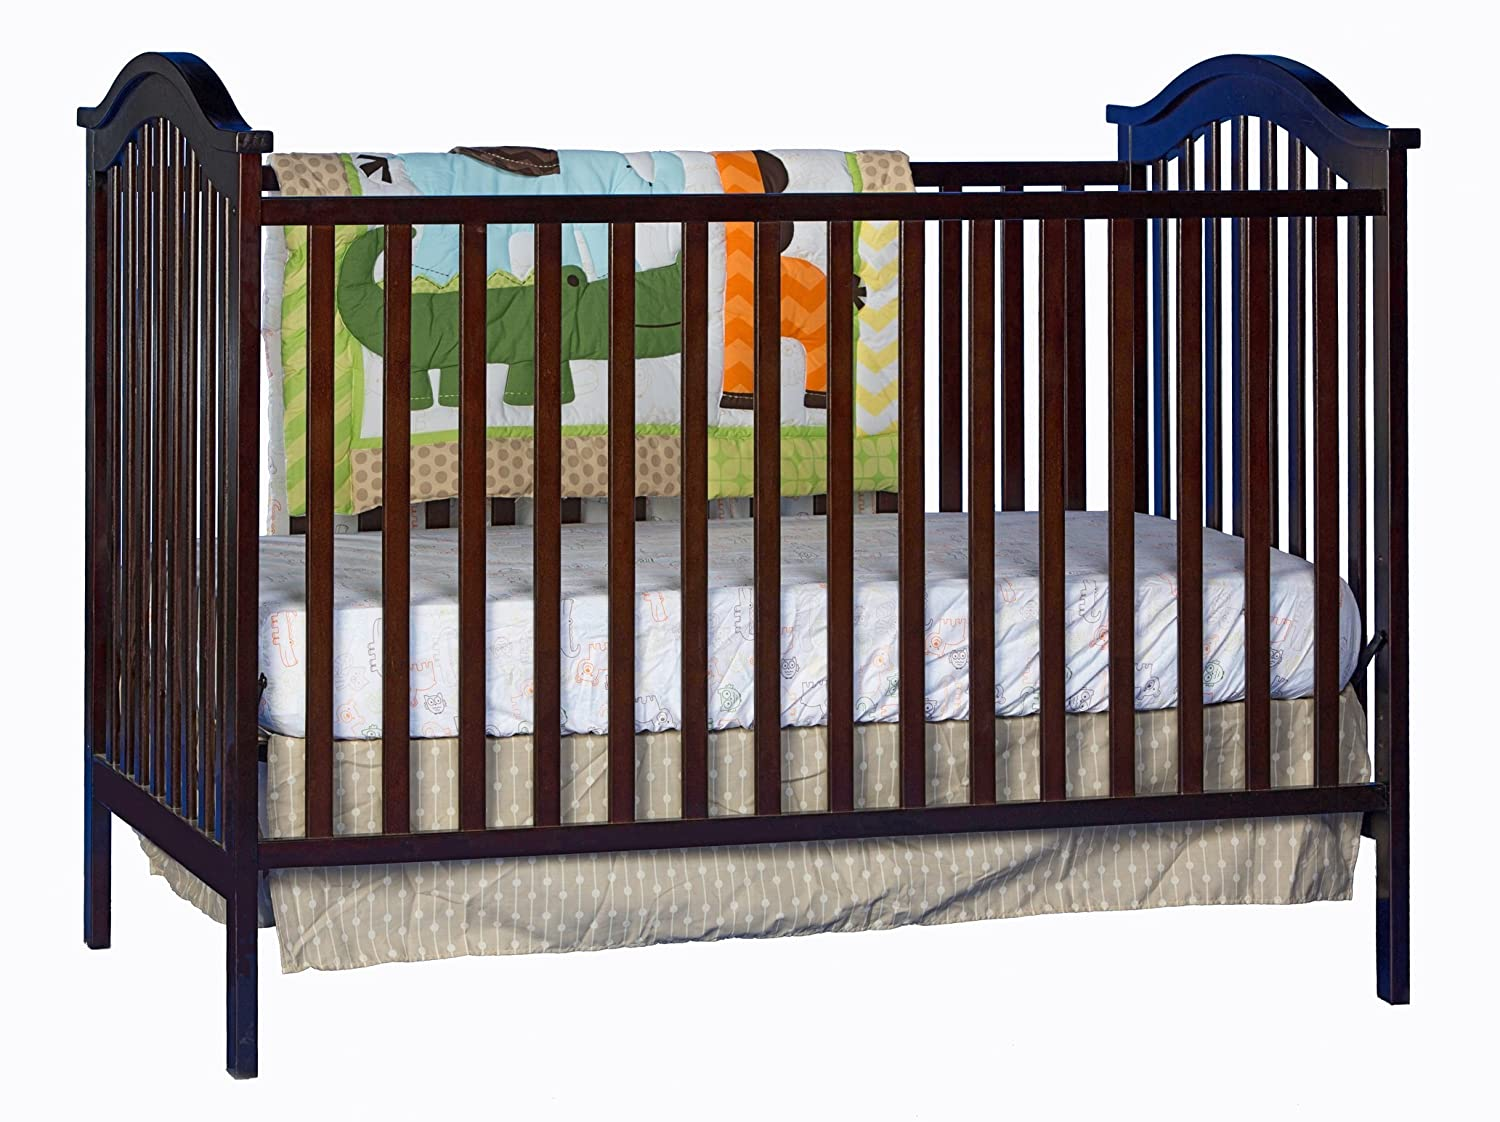 simmons easy side crib. amazon.com : stork craft hampton fixed side convertible crib, white baby simmons easy crib